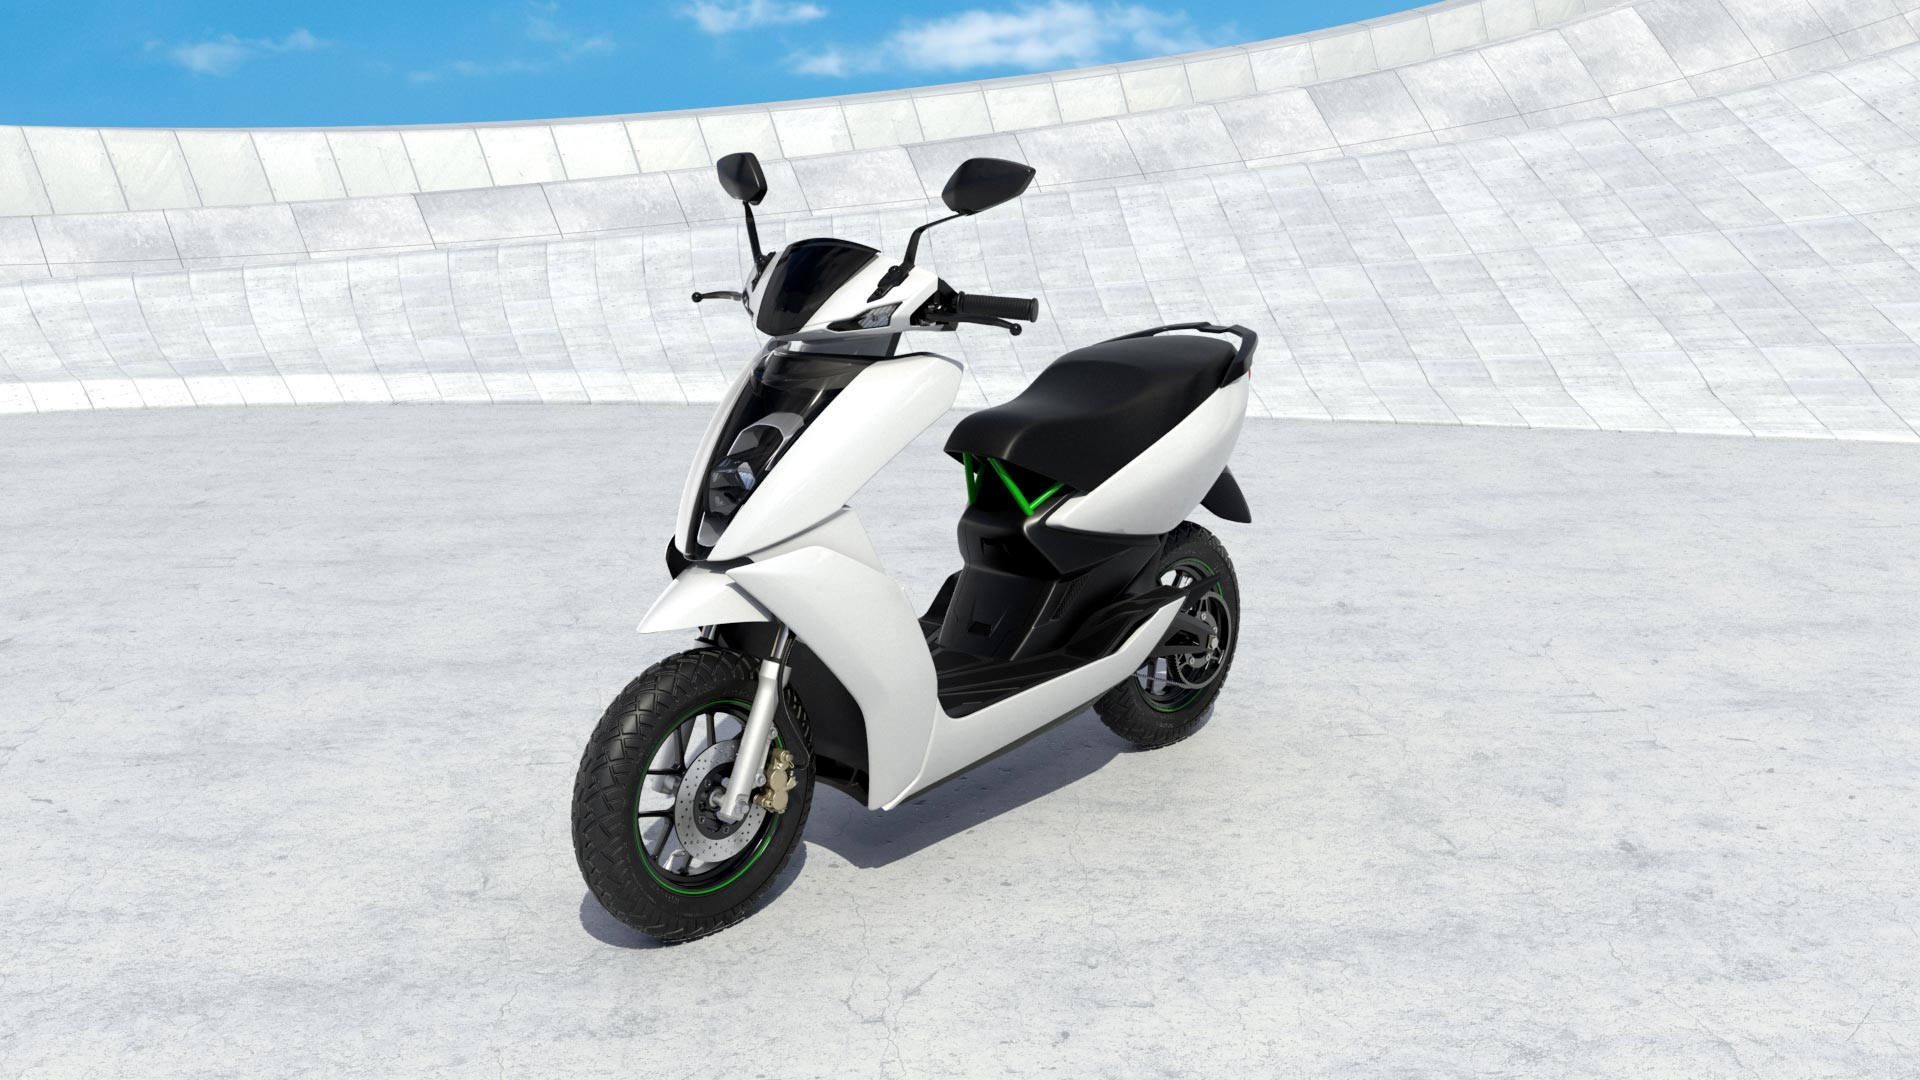 Ather-S340